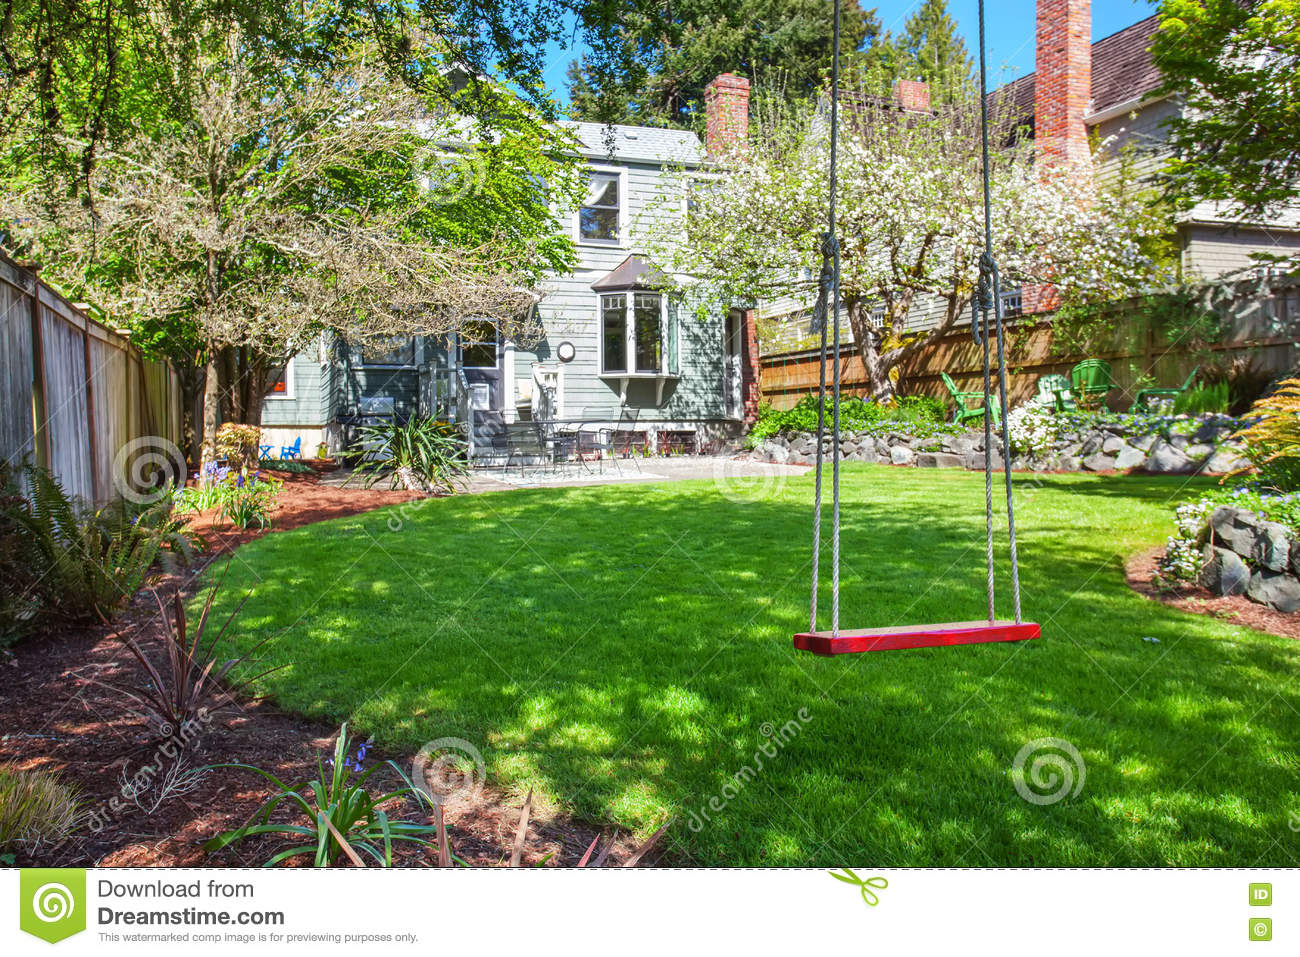 Child's Swing Sit In The Backyard Garden With Well Kept ...